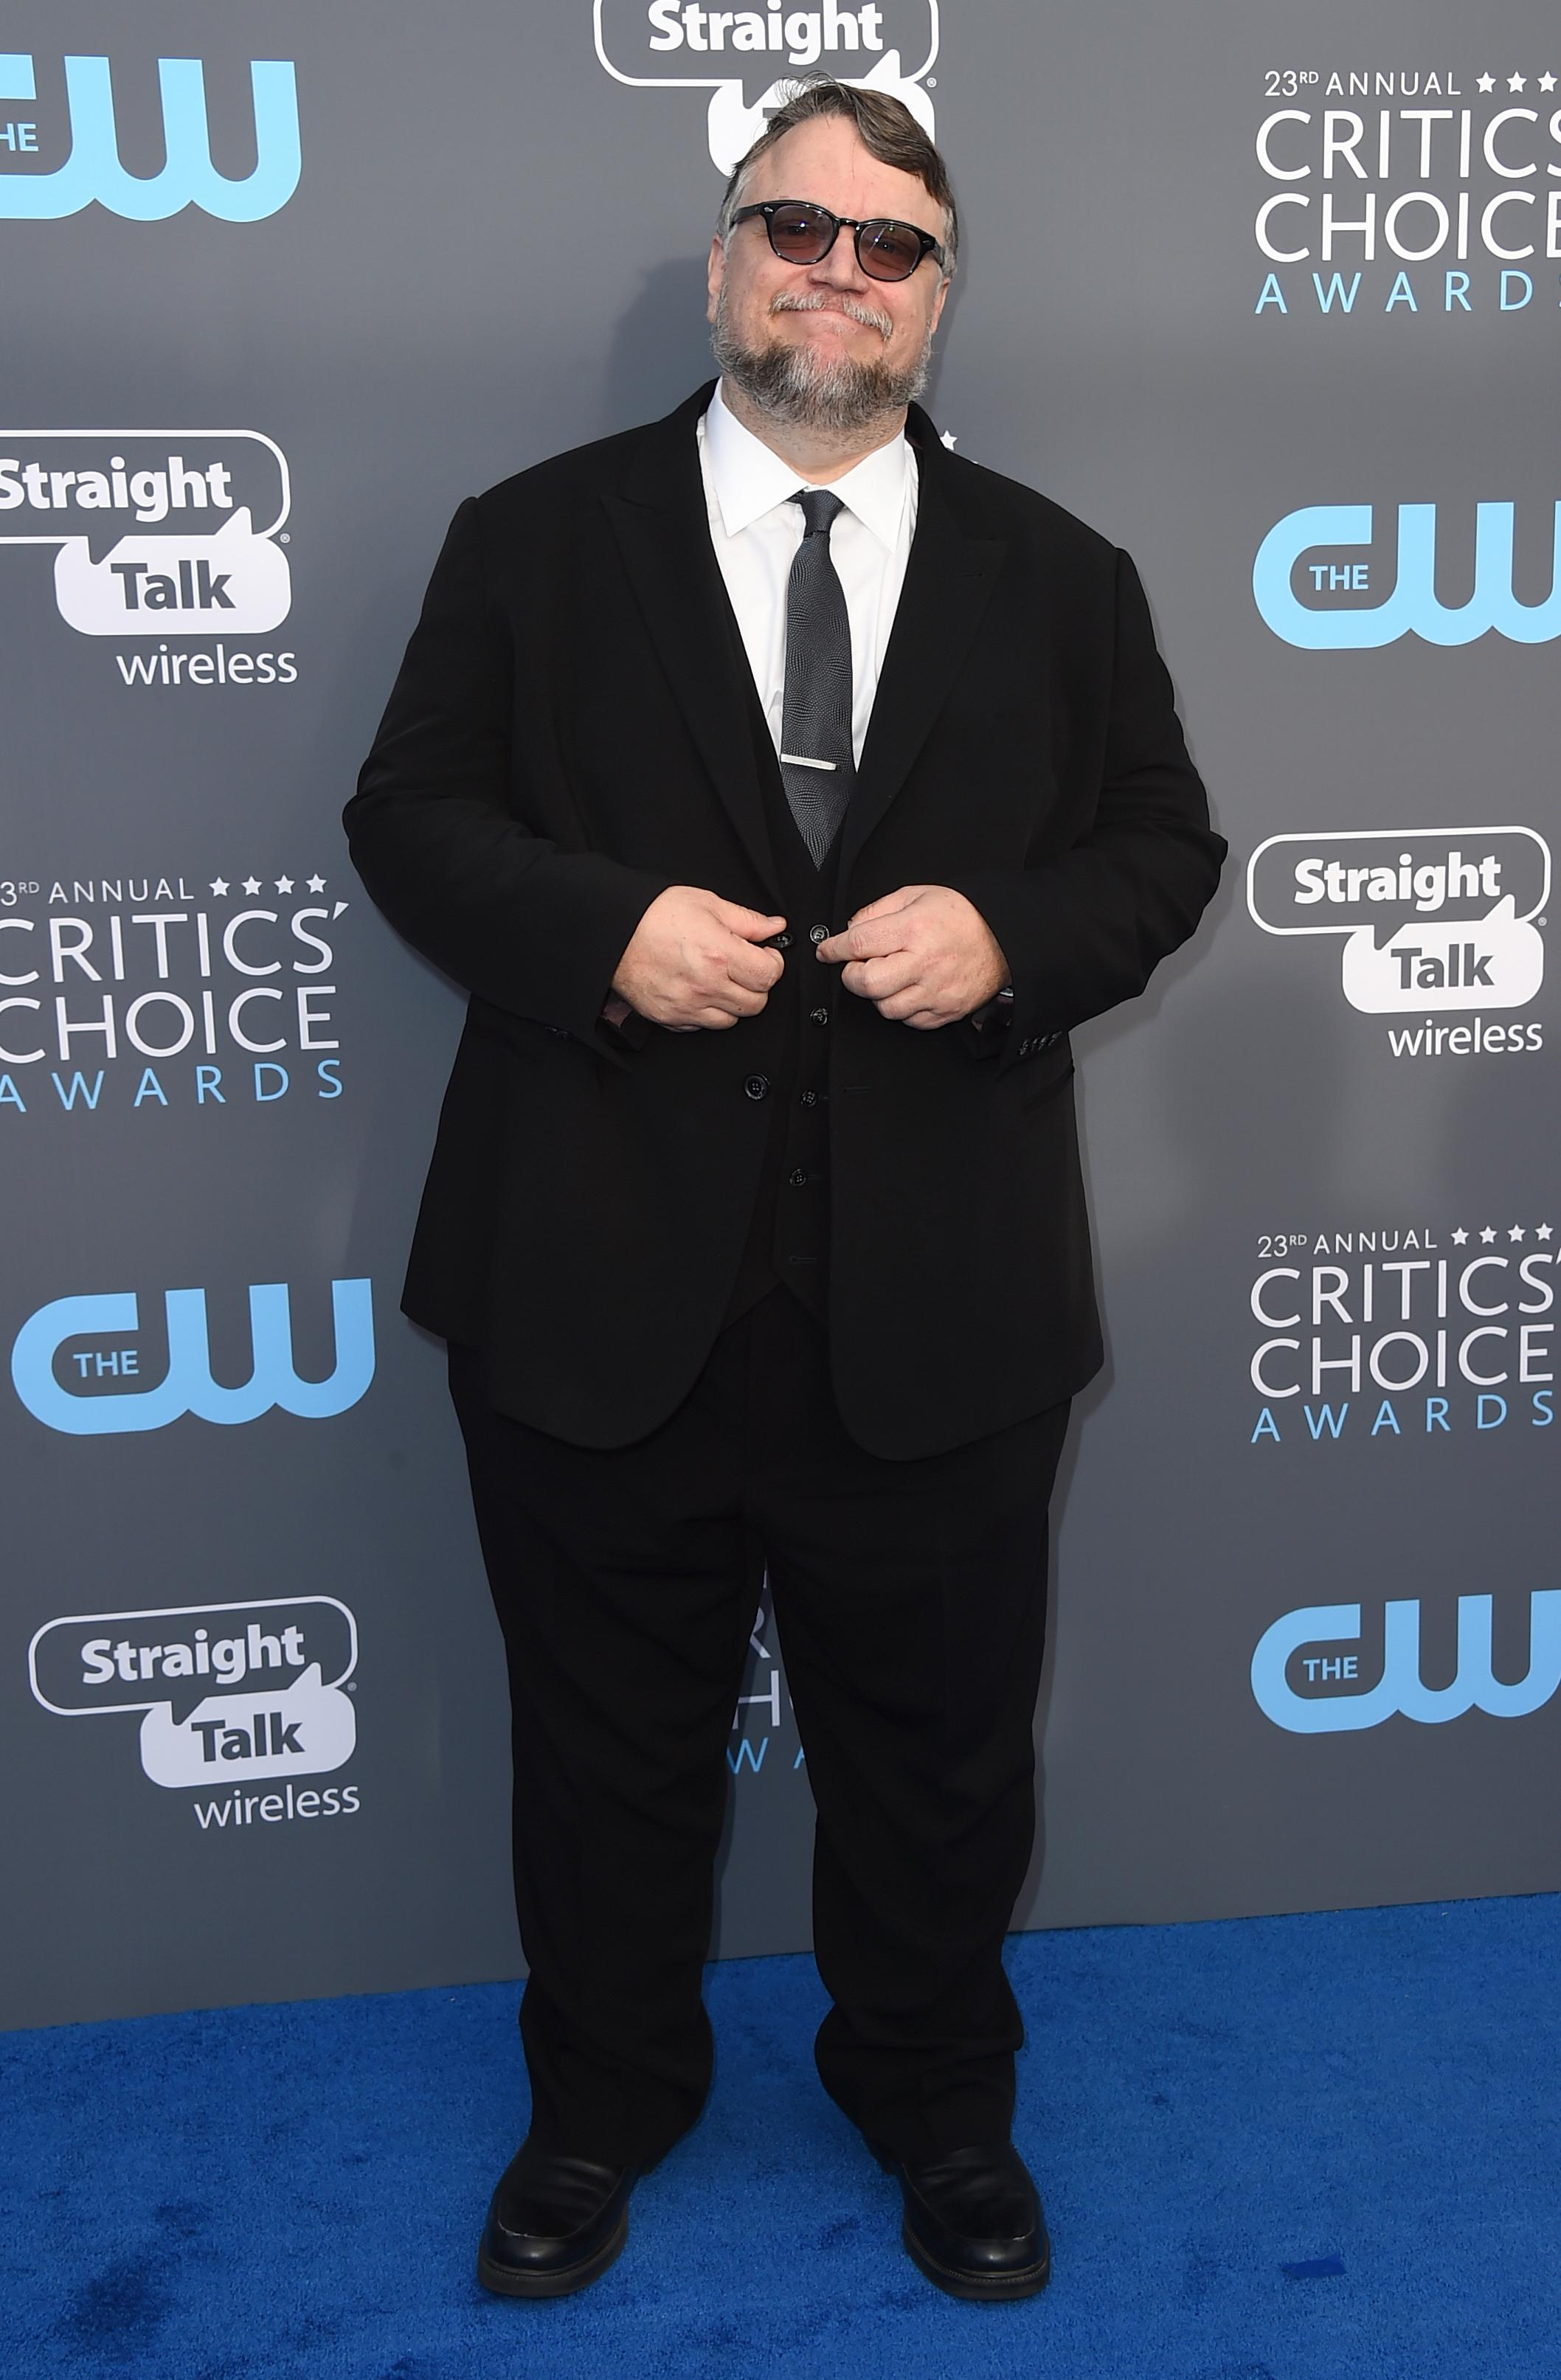 Guillermo del Toro arrives at the 23rd annual Critics' Choice Awards at the Barker Hangar on Thursday, Jan. 11, 2018, in Santa Monica, Calif. (Photo by Jordan Strauss/Invision/AP)